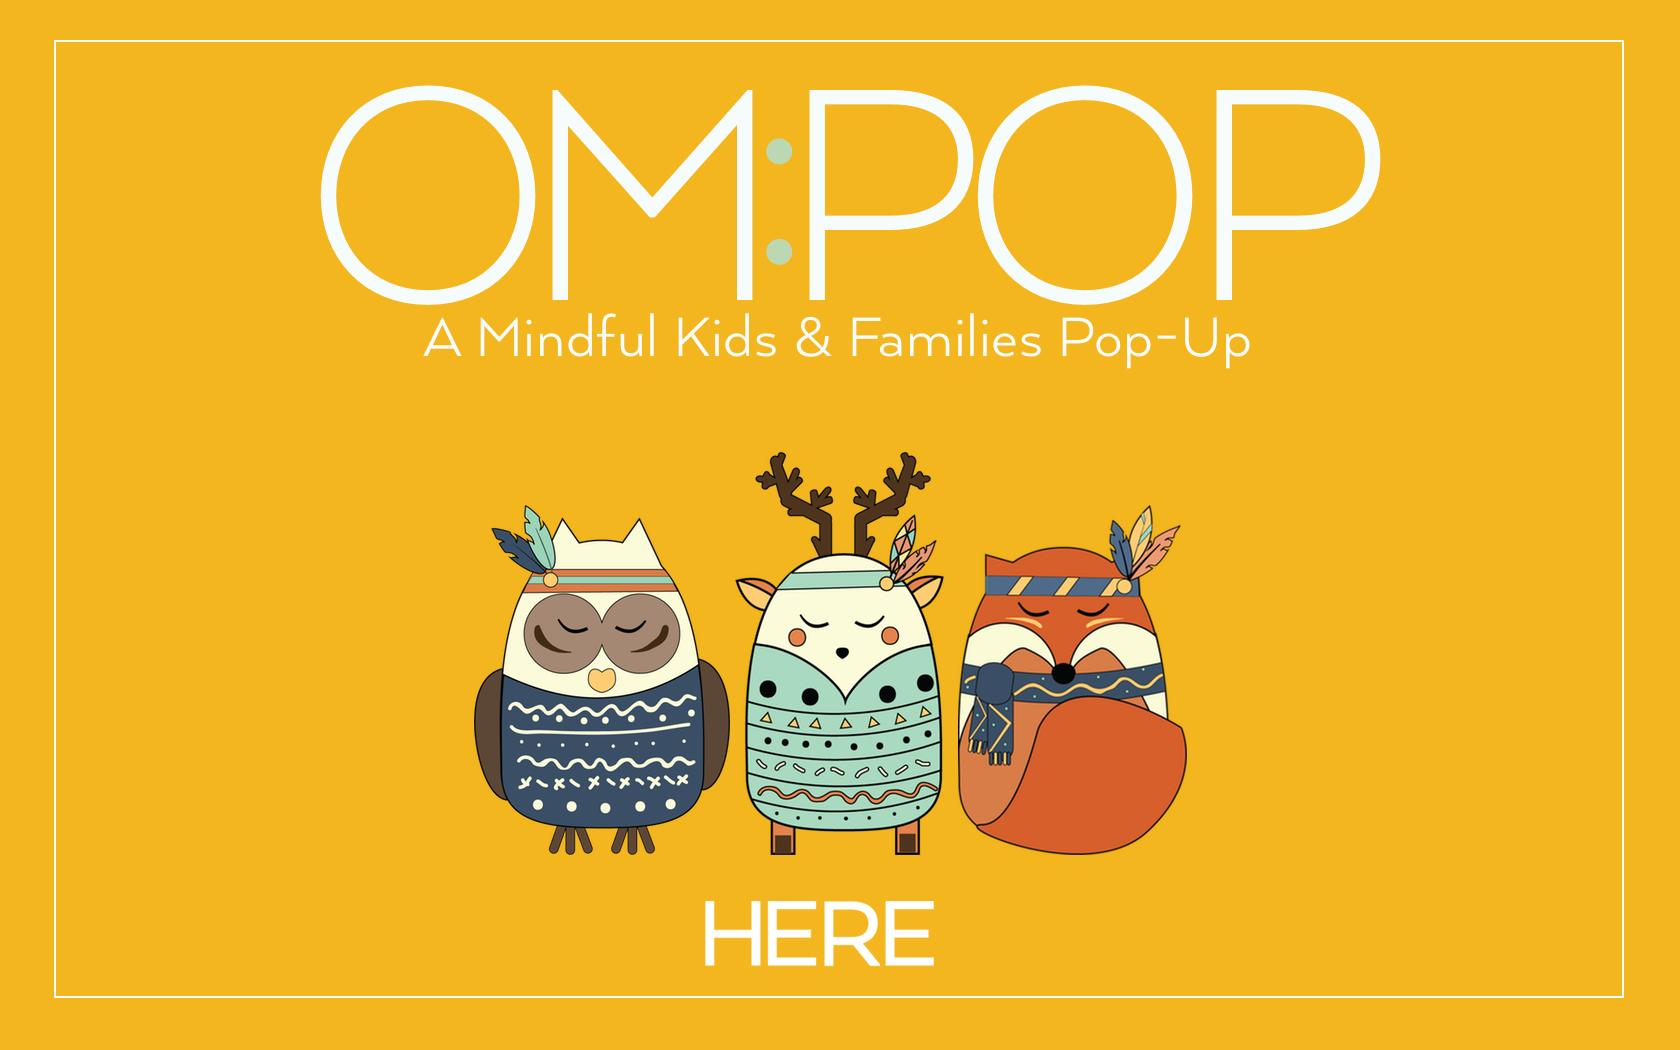 Om:Pop by HERE: Mindful Pop-Ups for Families